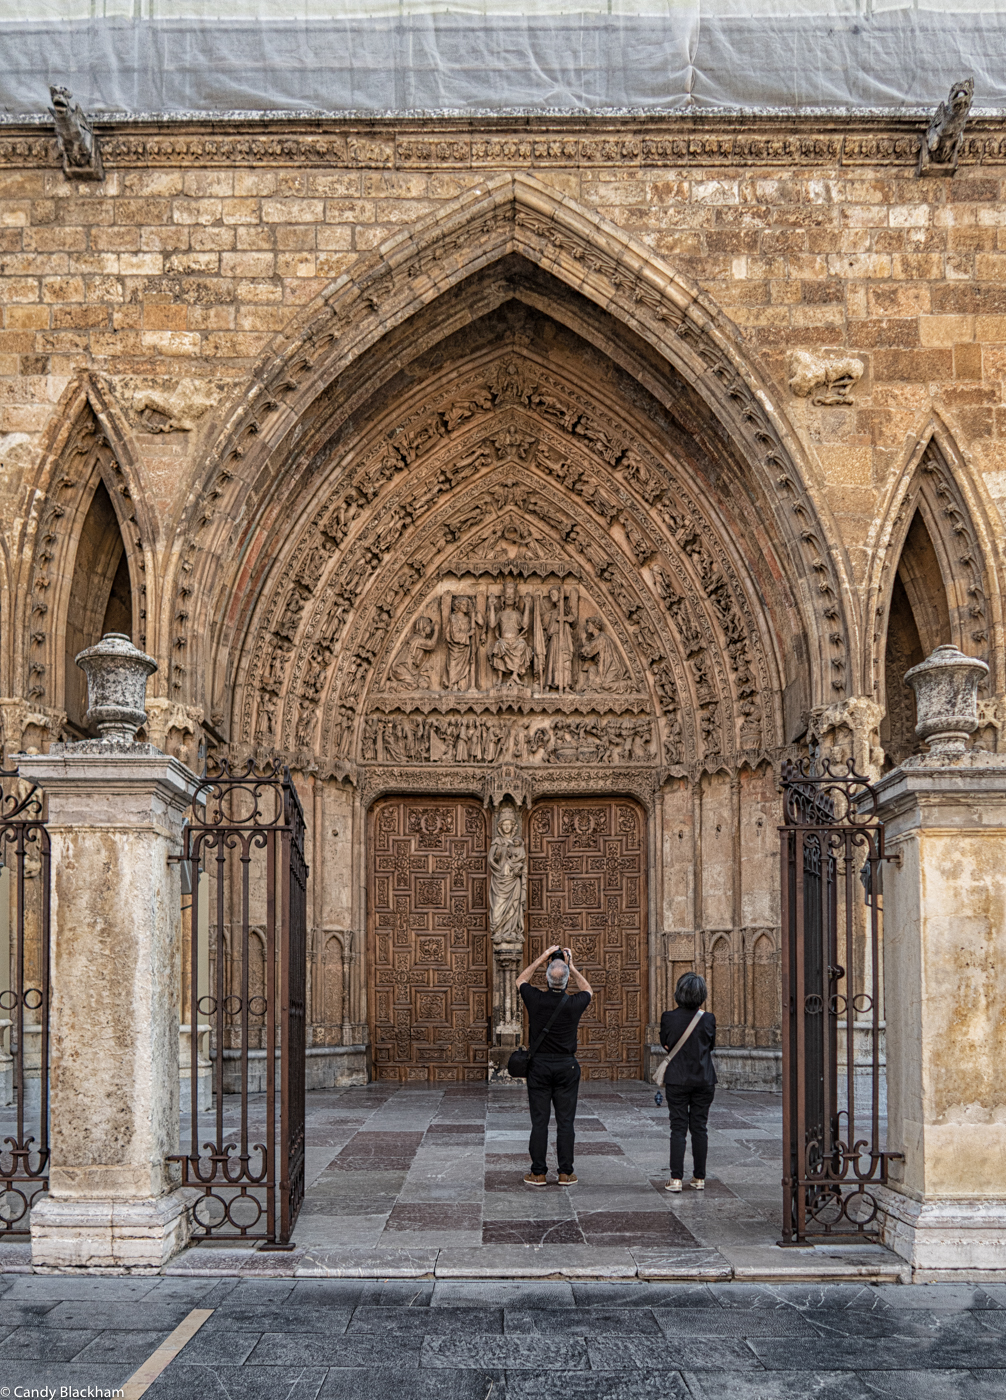 The main door of the Cathedral in Leon